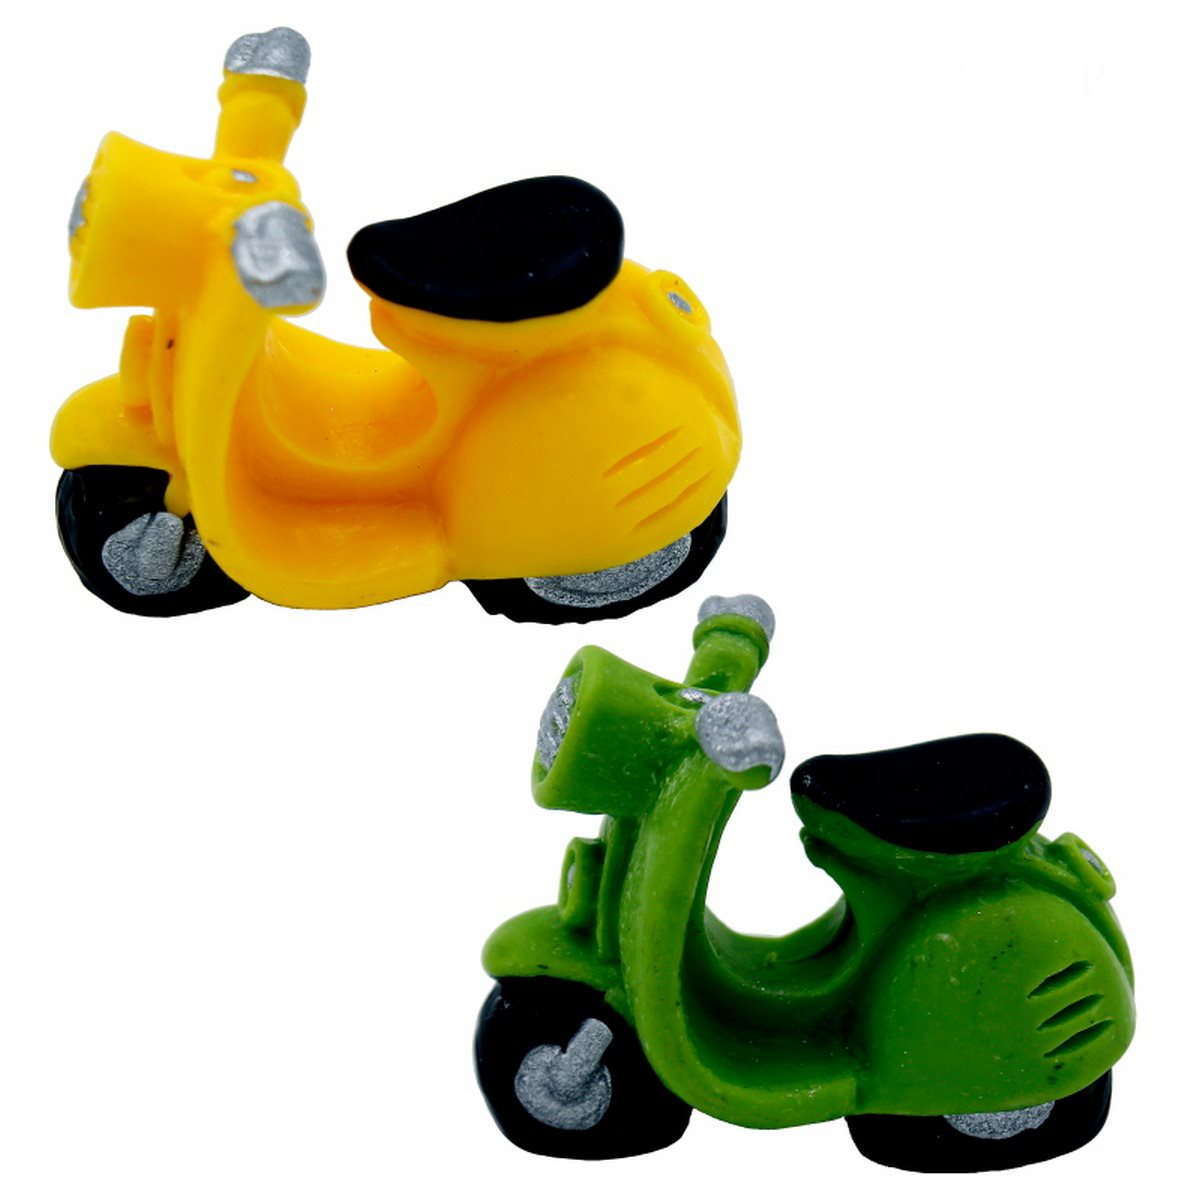 Miniature Scooter